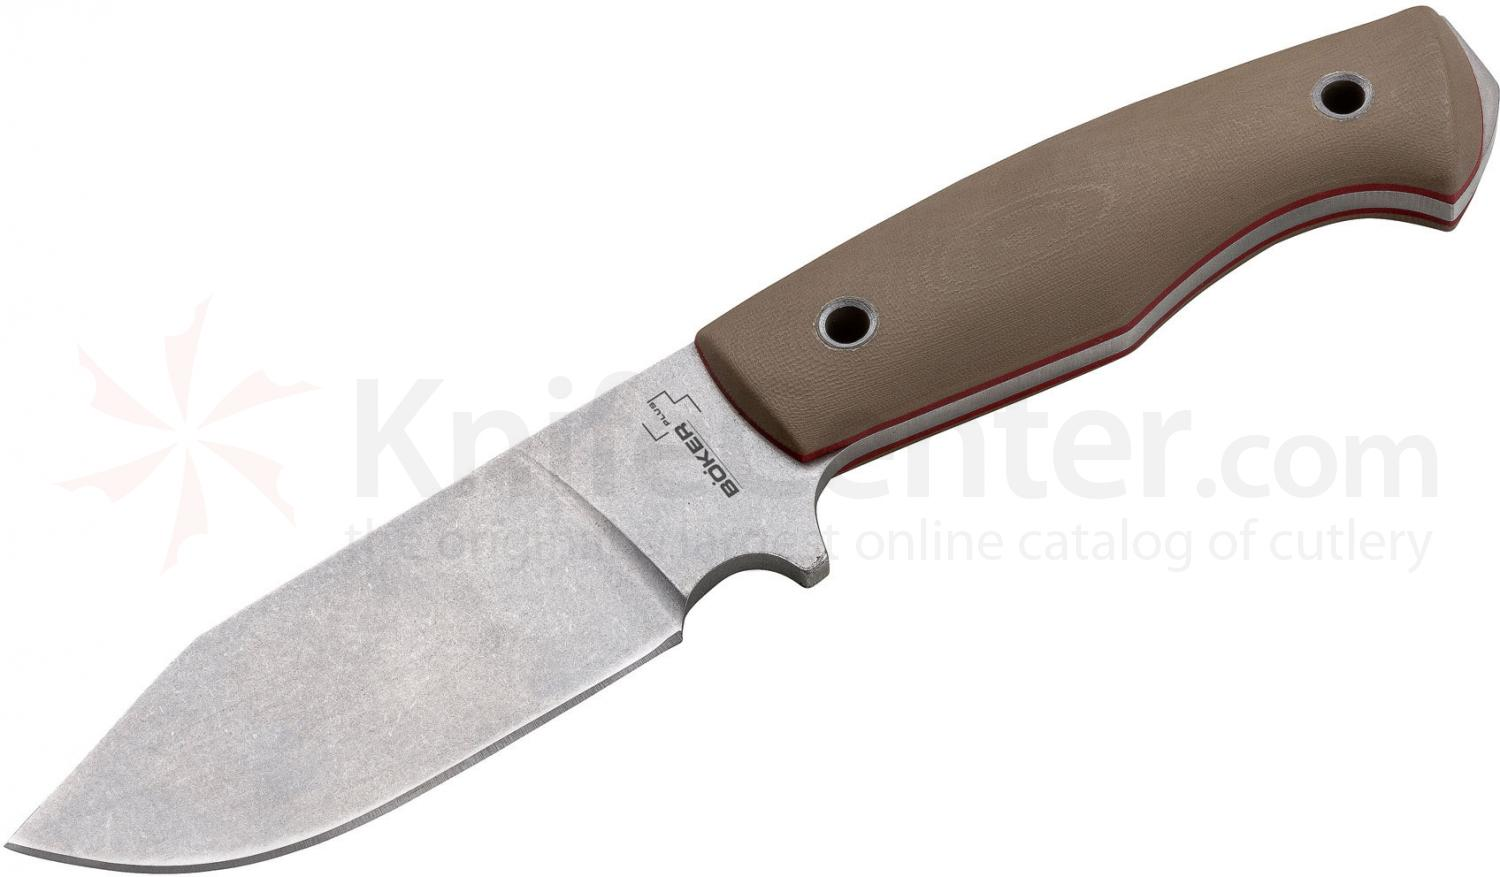 Boker Plus VoxKnives Rold Scout Fixed 3.25 inch Stonewashed D2 Blade, G10 Handles, Kydex Sheath